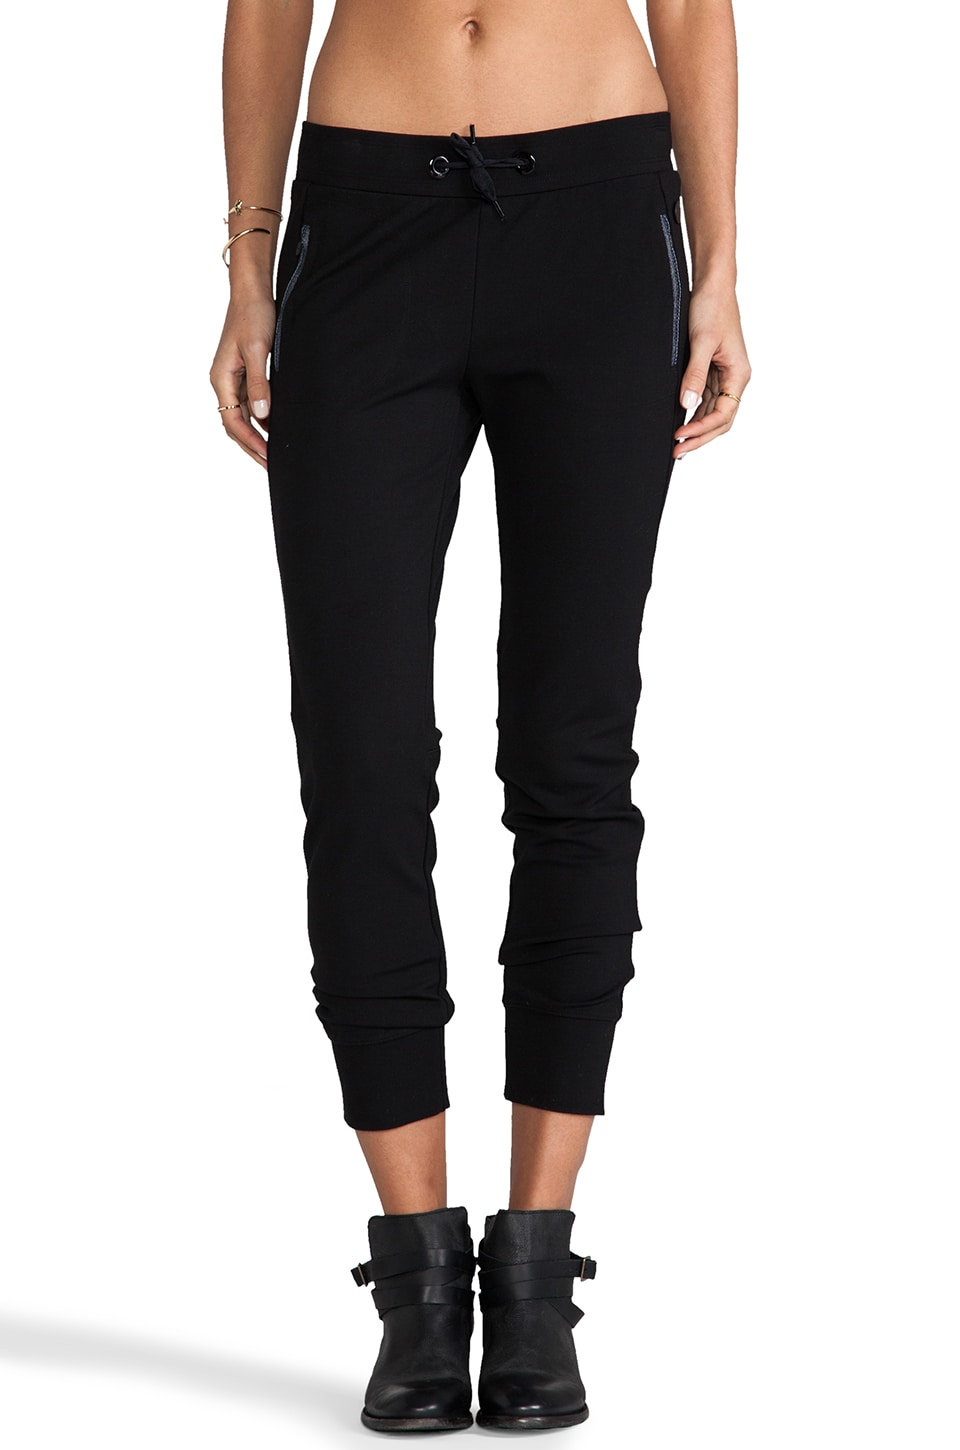 G-Star Yard Slim Pant in Black